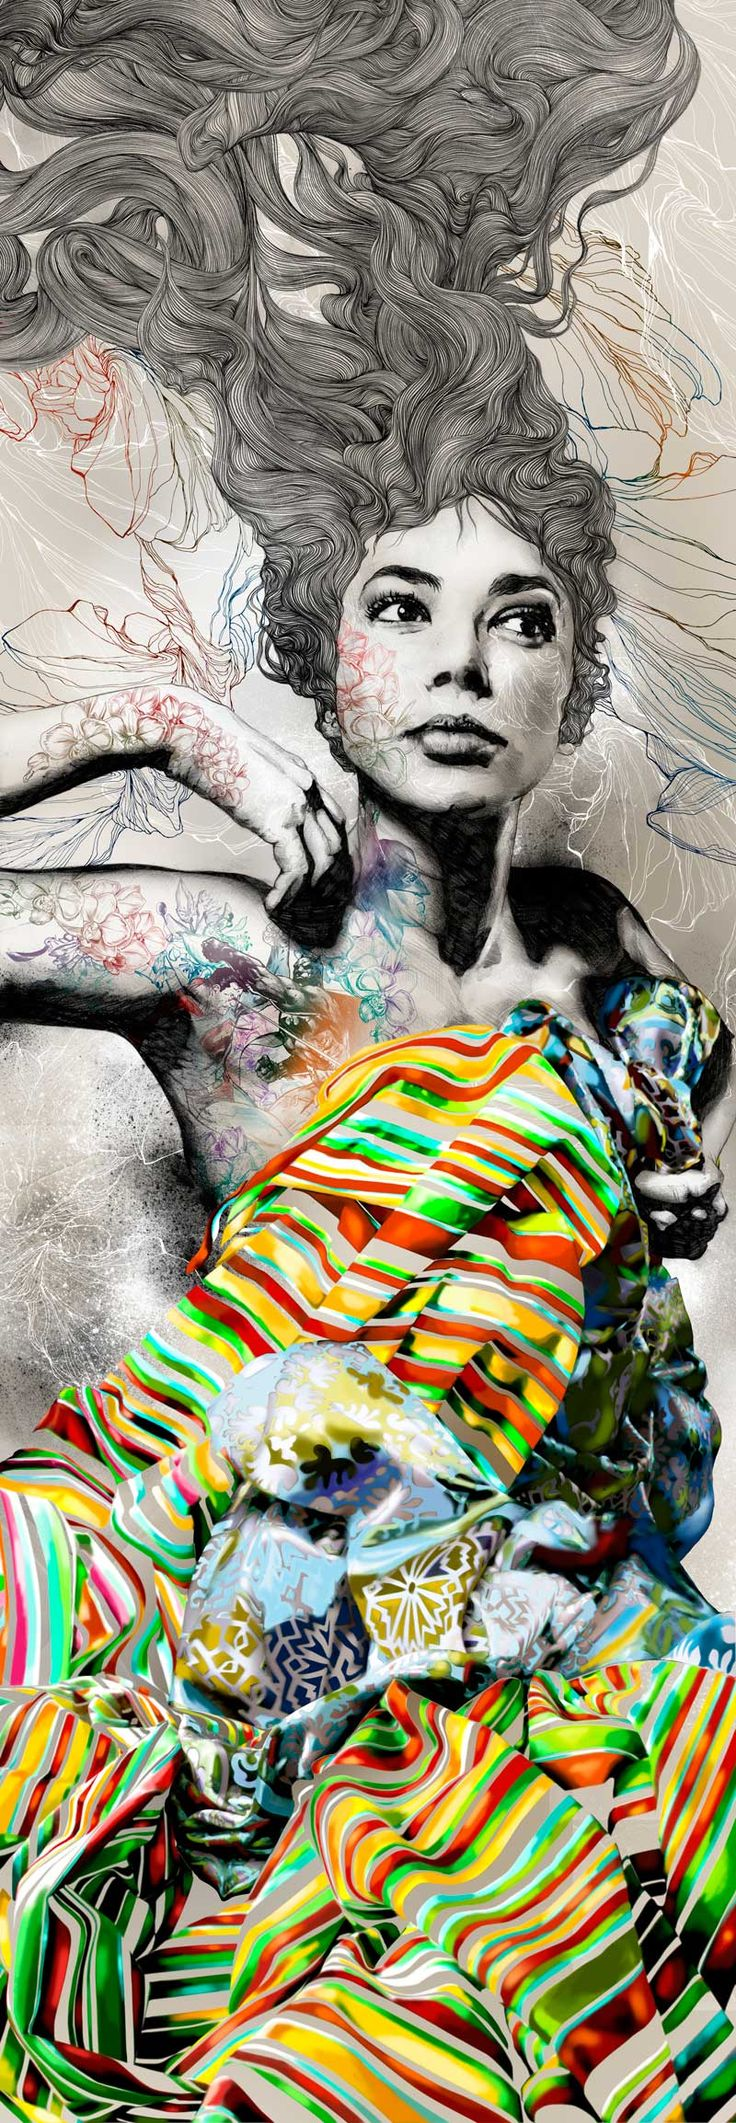 'Elena', (2011). Gabriel Moreno. Illustrator, engraver and painter based in Madrid, graduated of Fine Arts in the University of Sevilla in 98